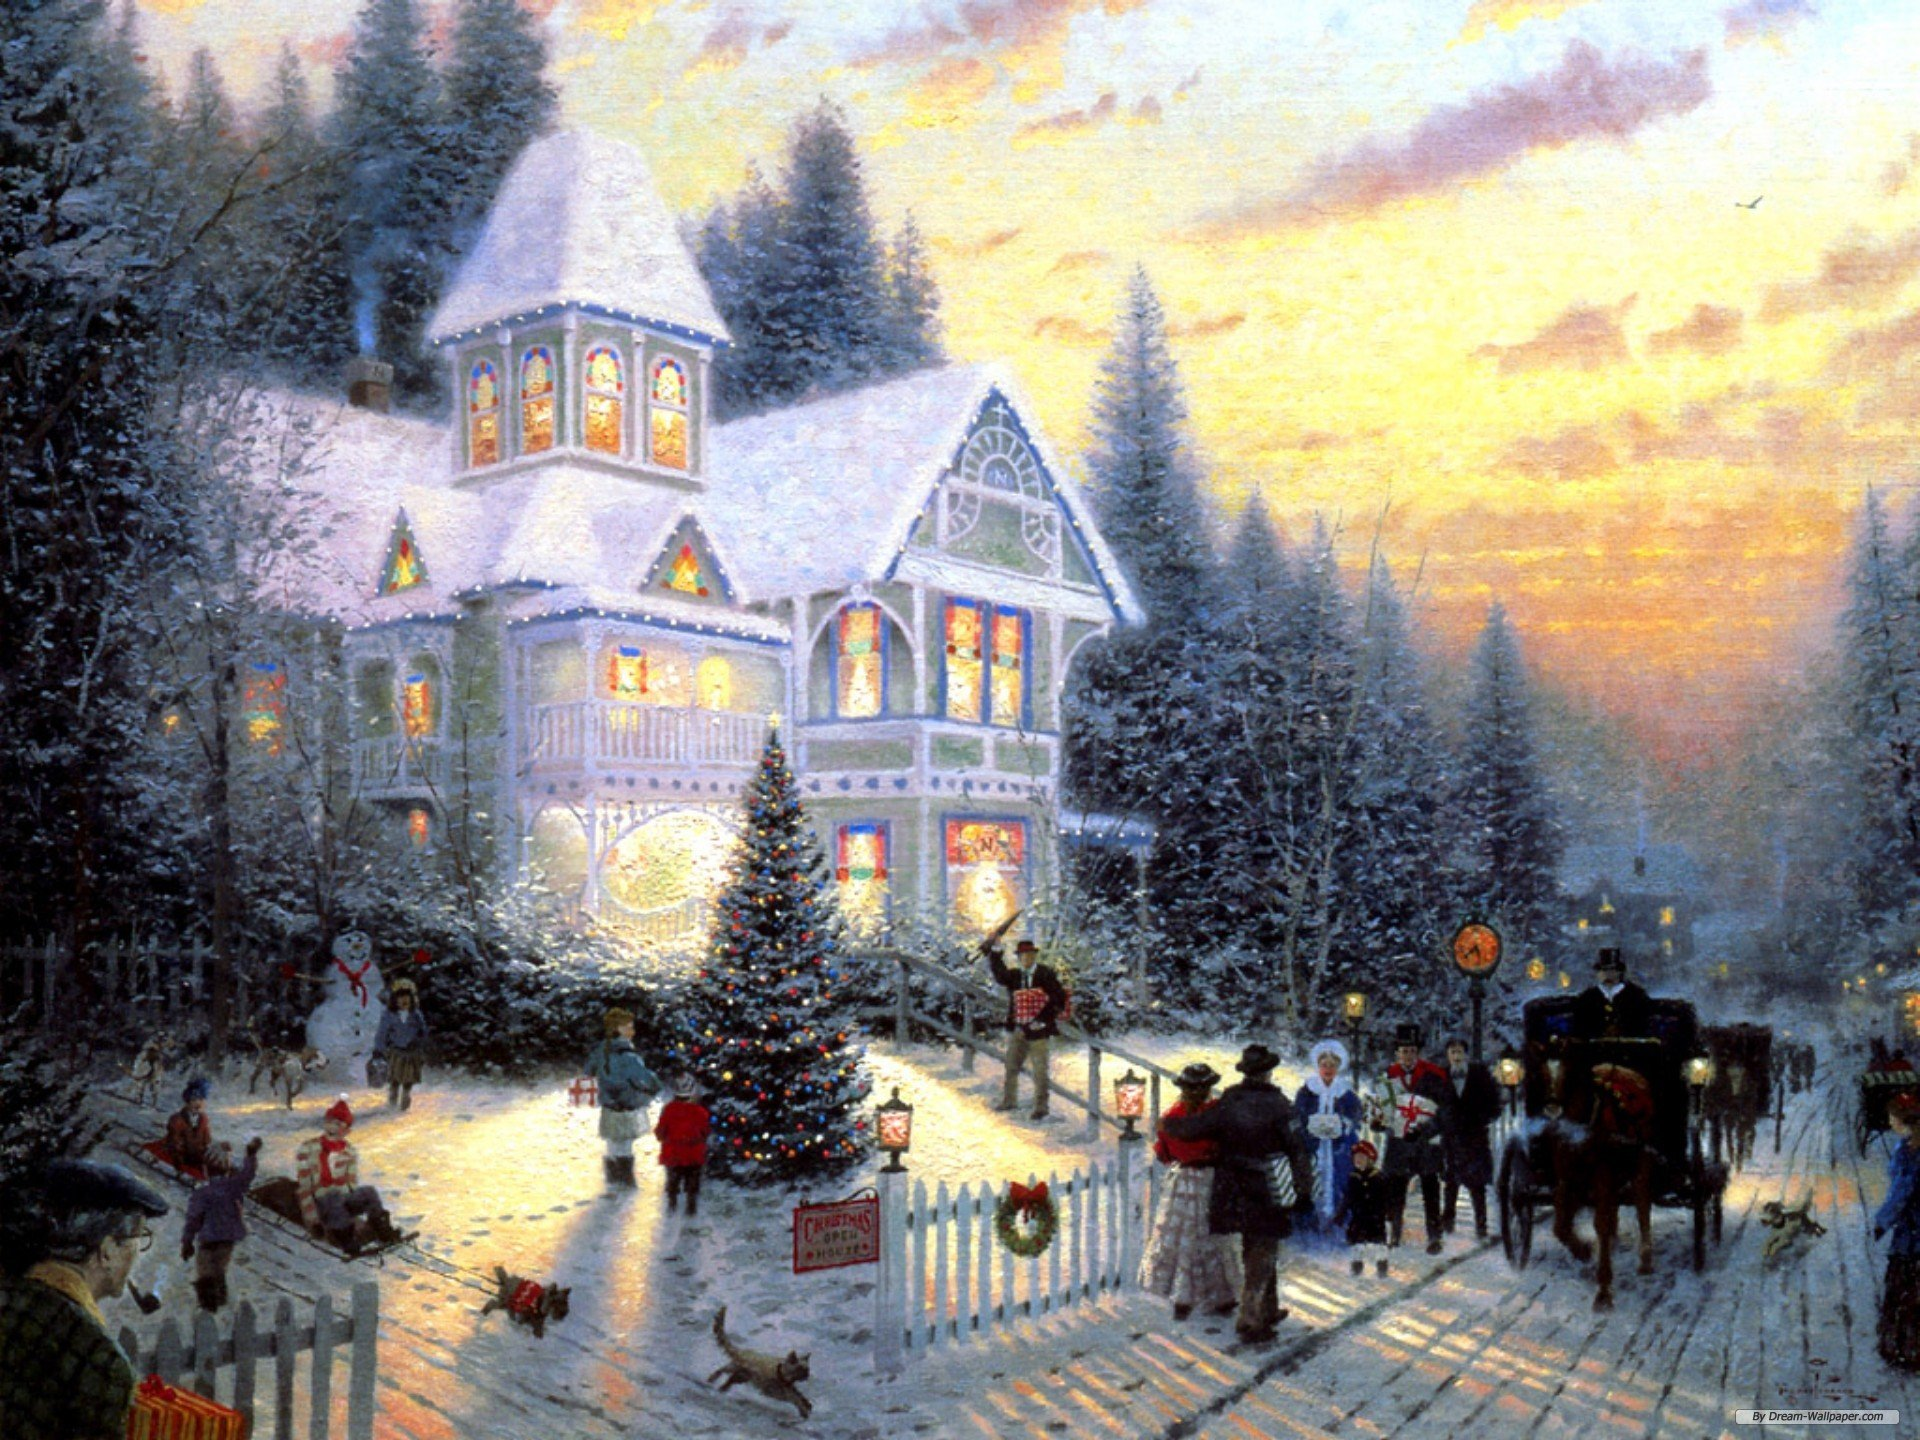 holiday wallpaperchristmas eve painting wallpaper1920x1440free 1920x1440